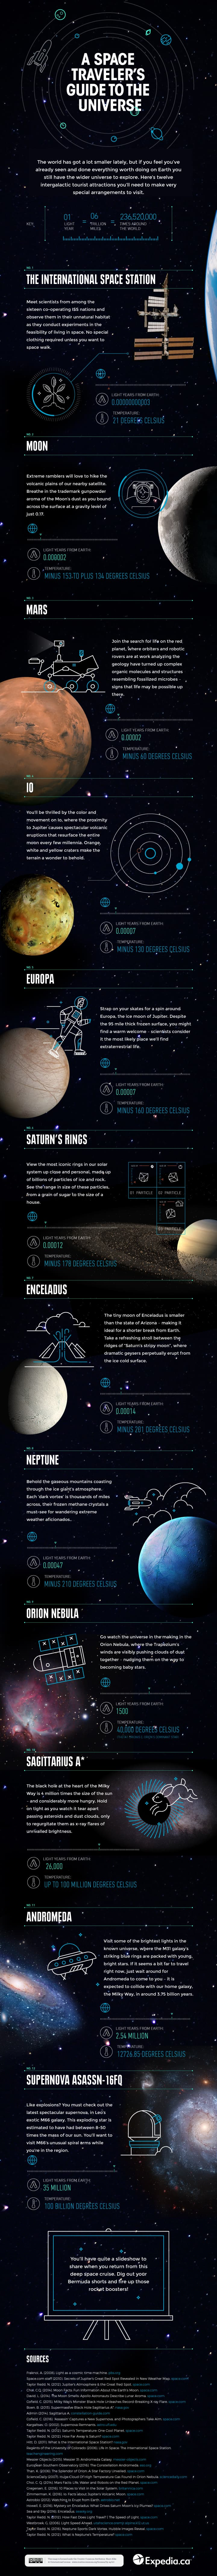 a_space_travelers_guide